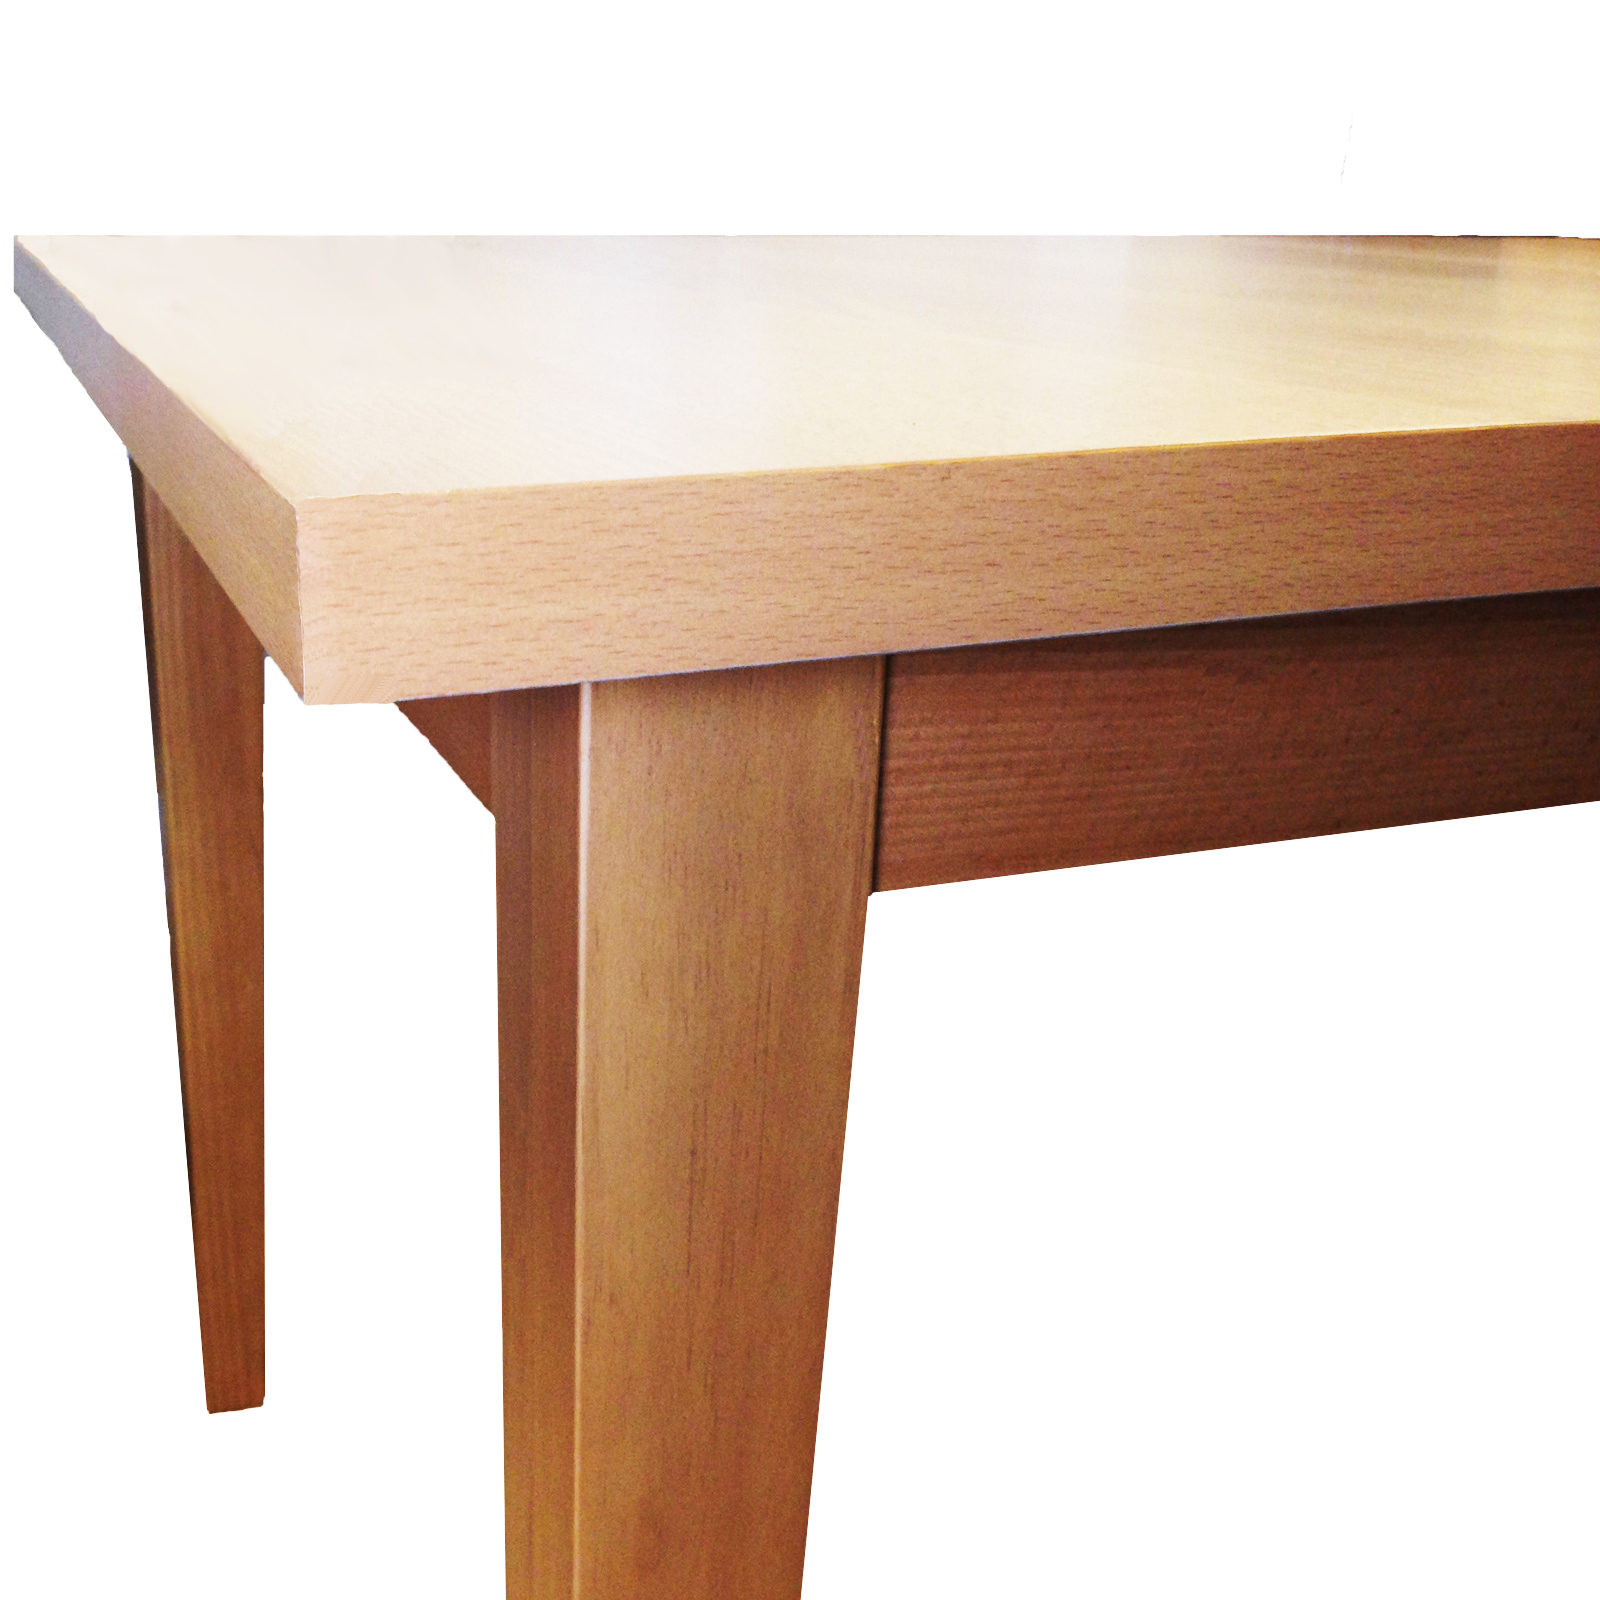 Beech Dining Table Dining Room Ideas - Extendable beech dining table